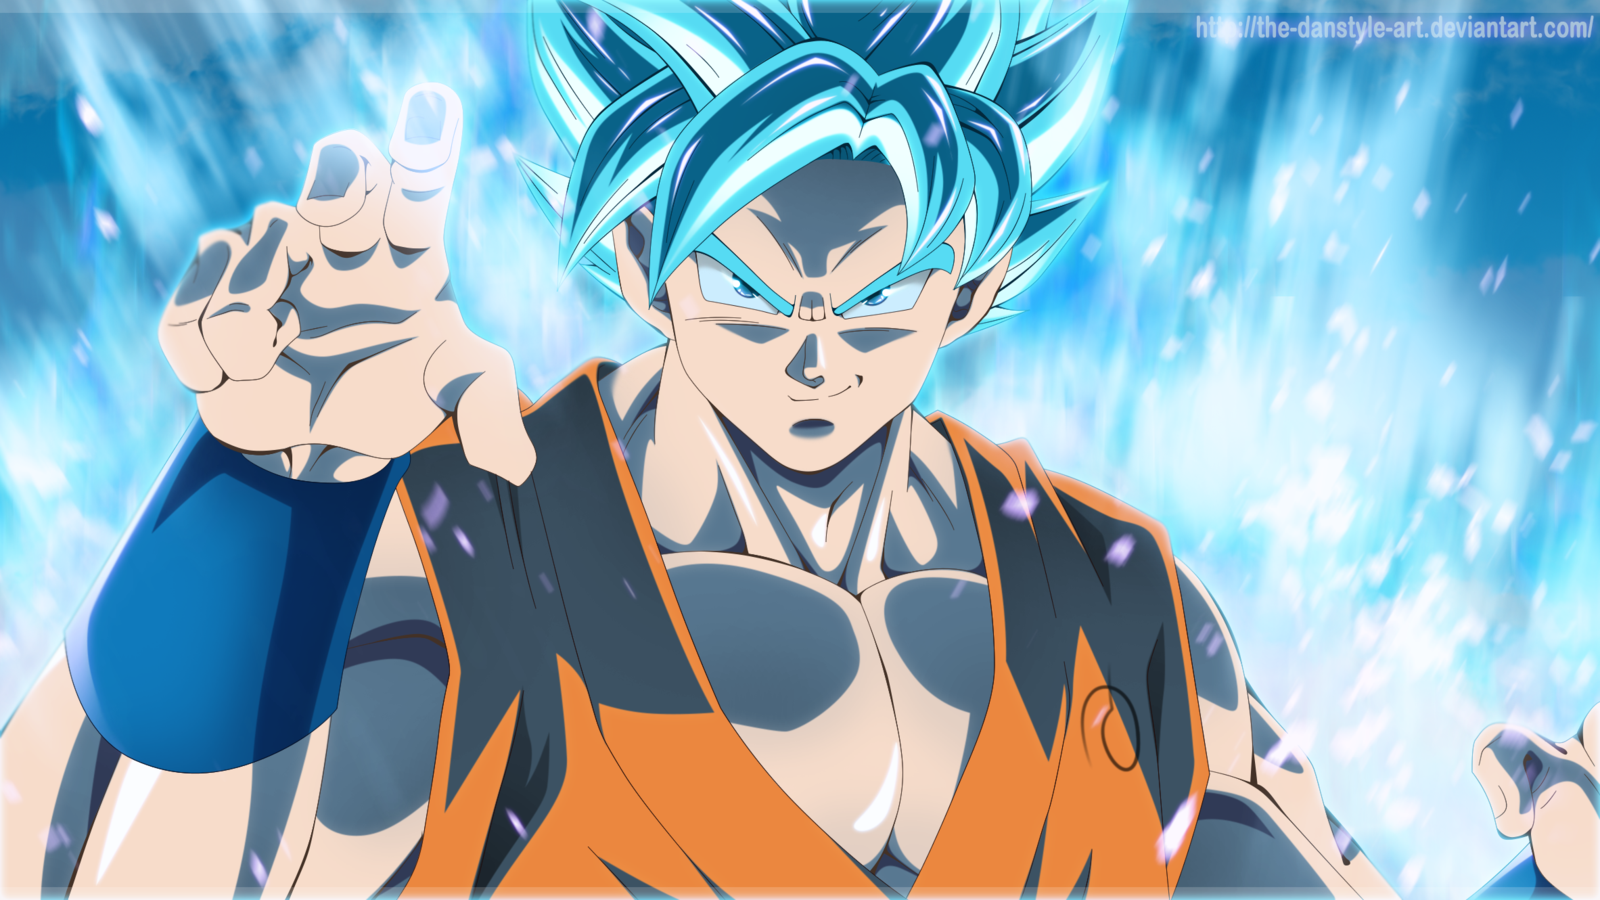 Free Download Goku Super Saiyan Blue Wallpaper Hd 1600x900 For Your Desktop Mobile Tablet Explore 94 Goku God Wallpapers Goku God Wallpapers God Goku Wallpaper Goku Ssj God Wallpaper